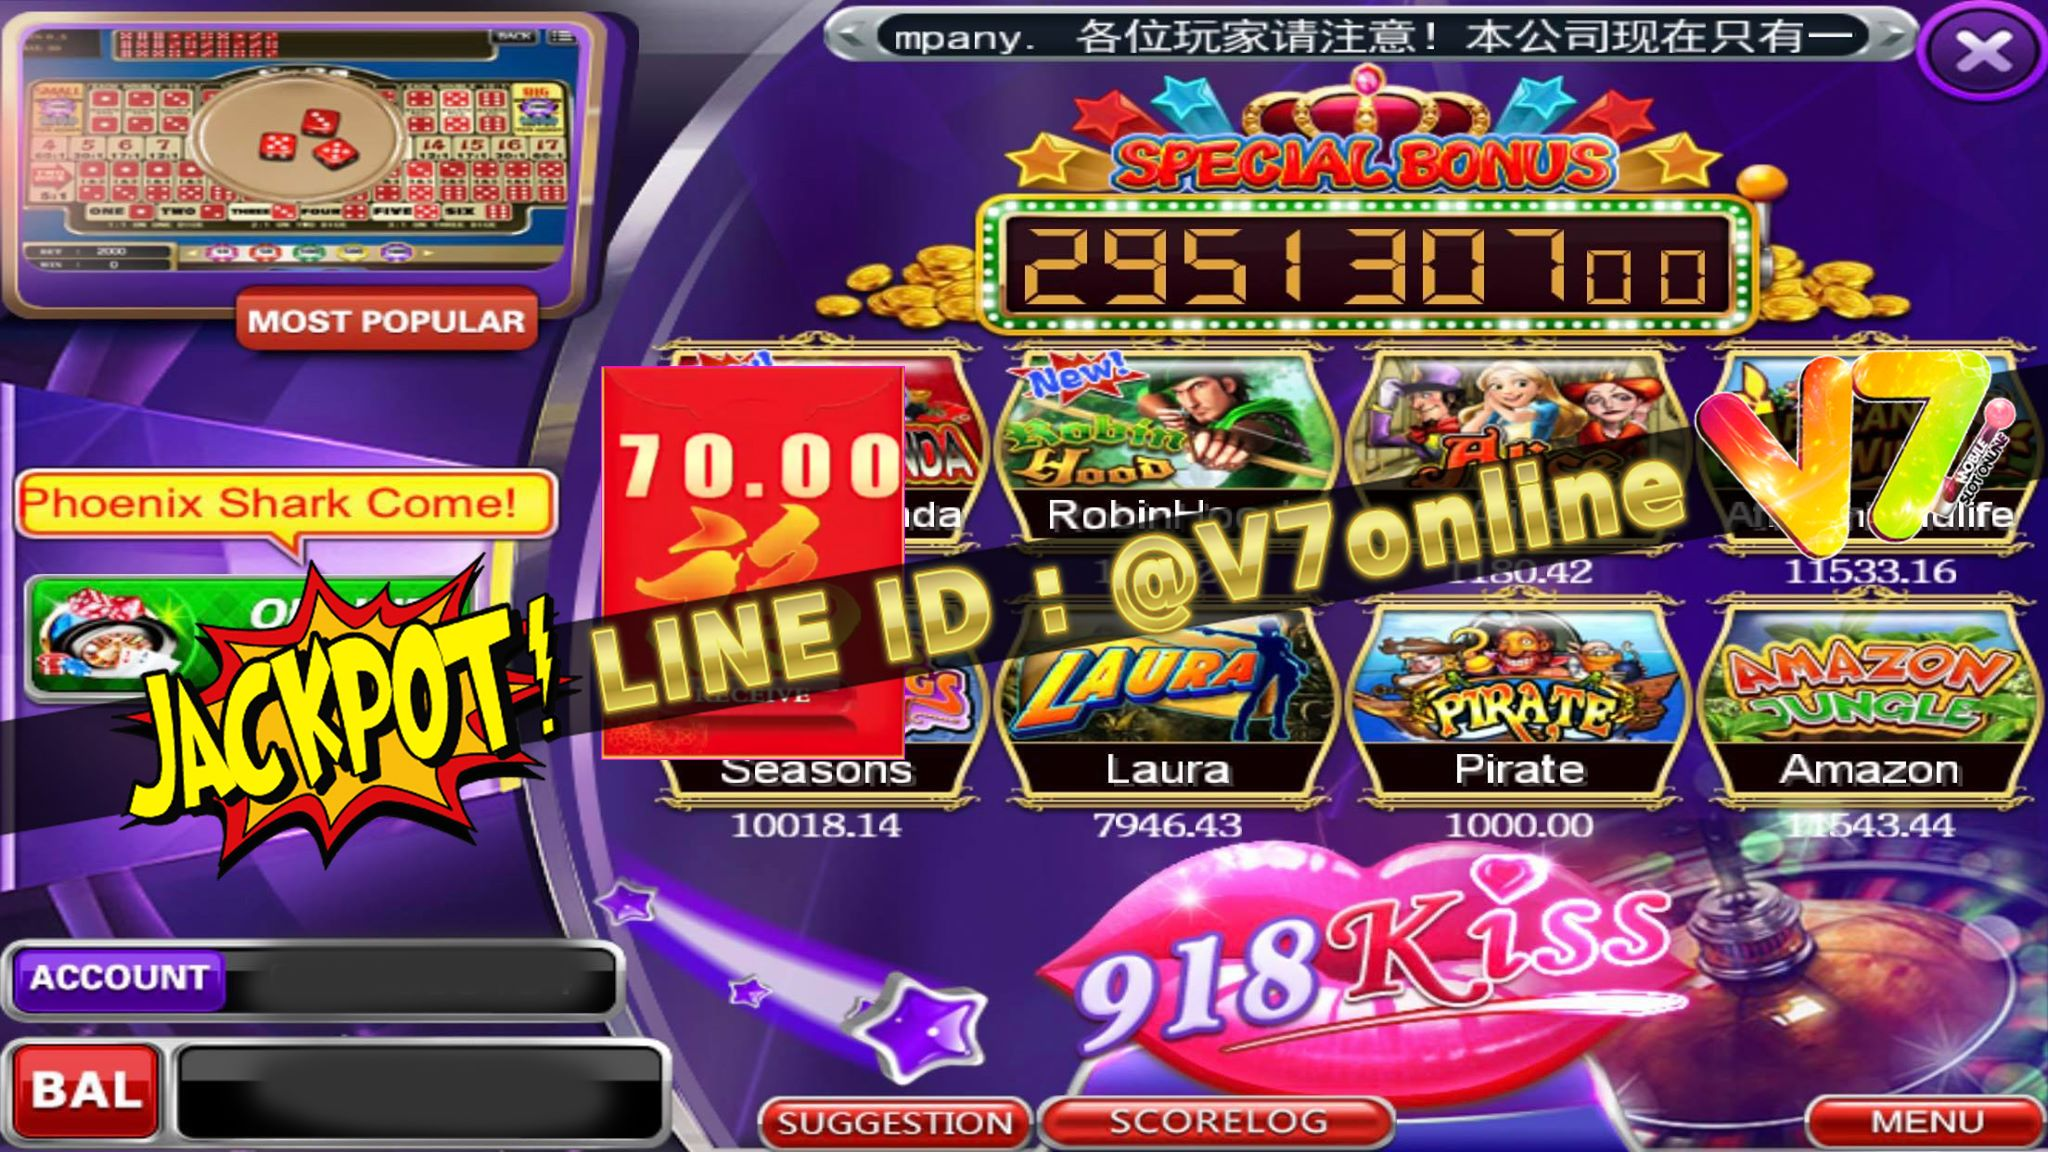 Safest mobile casino uk players for real money